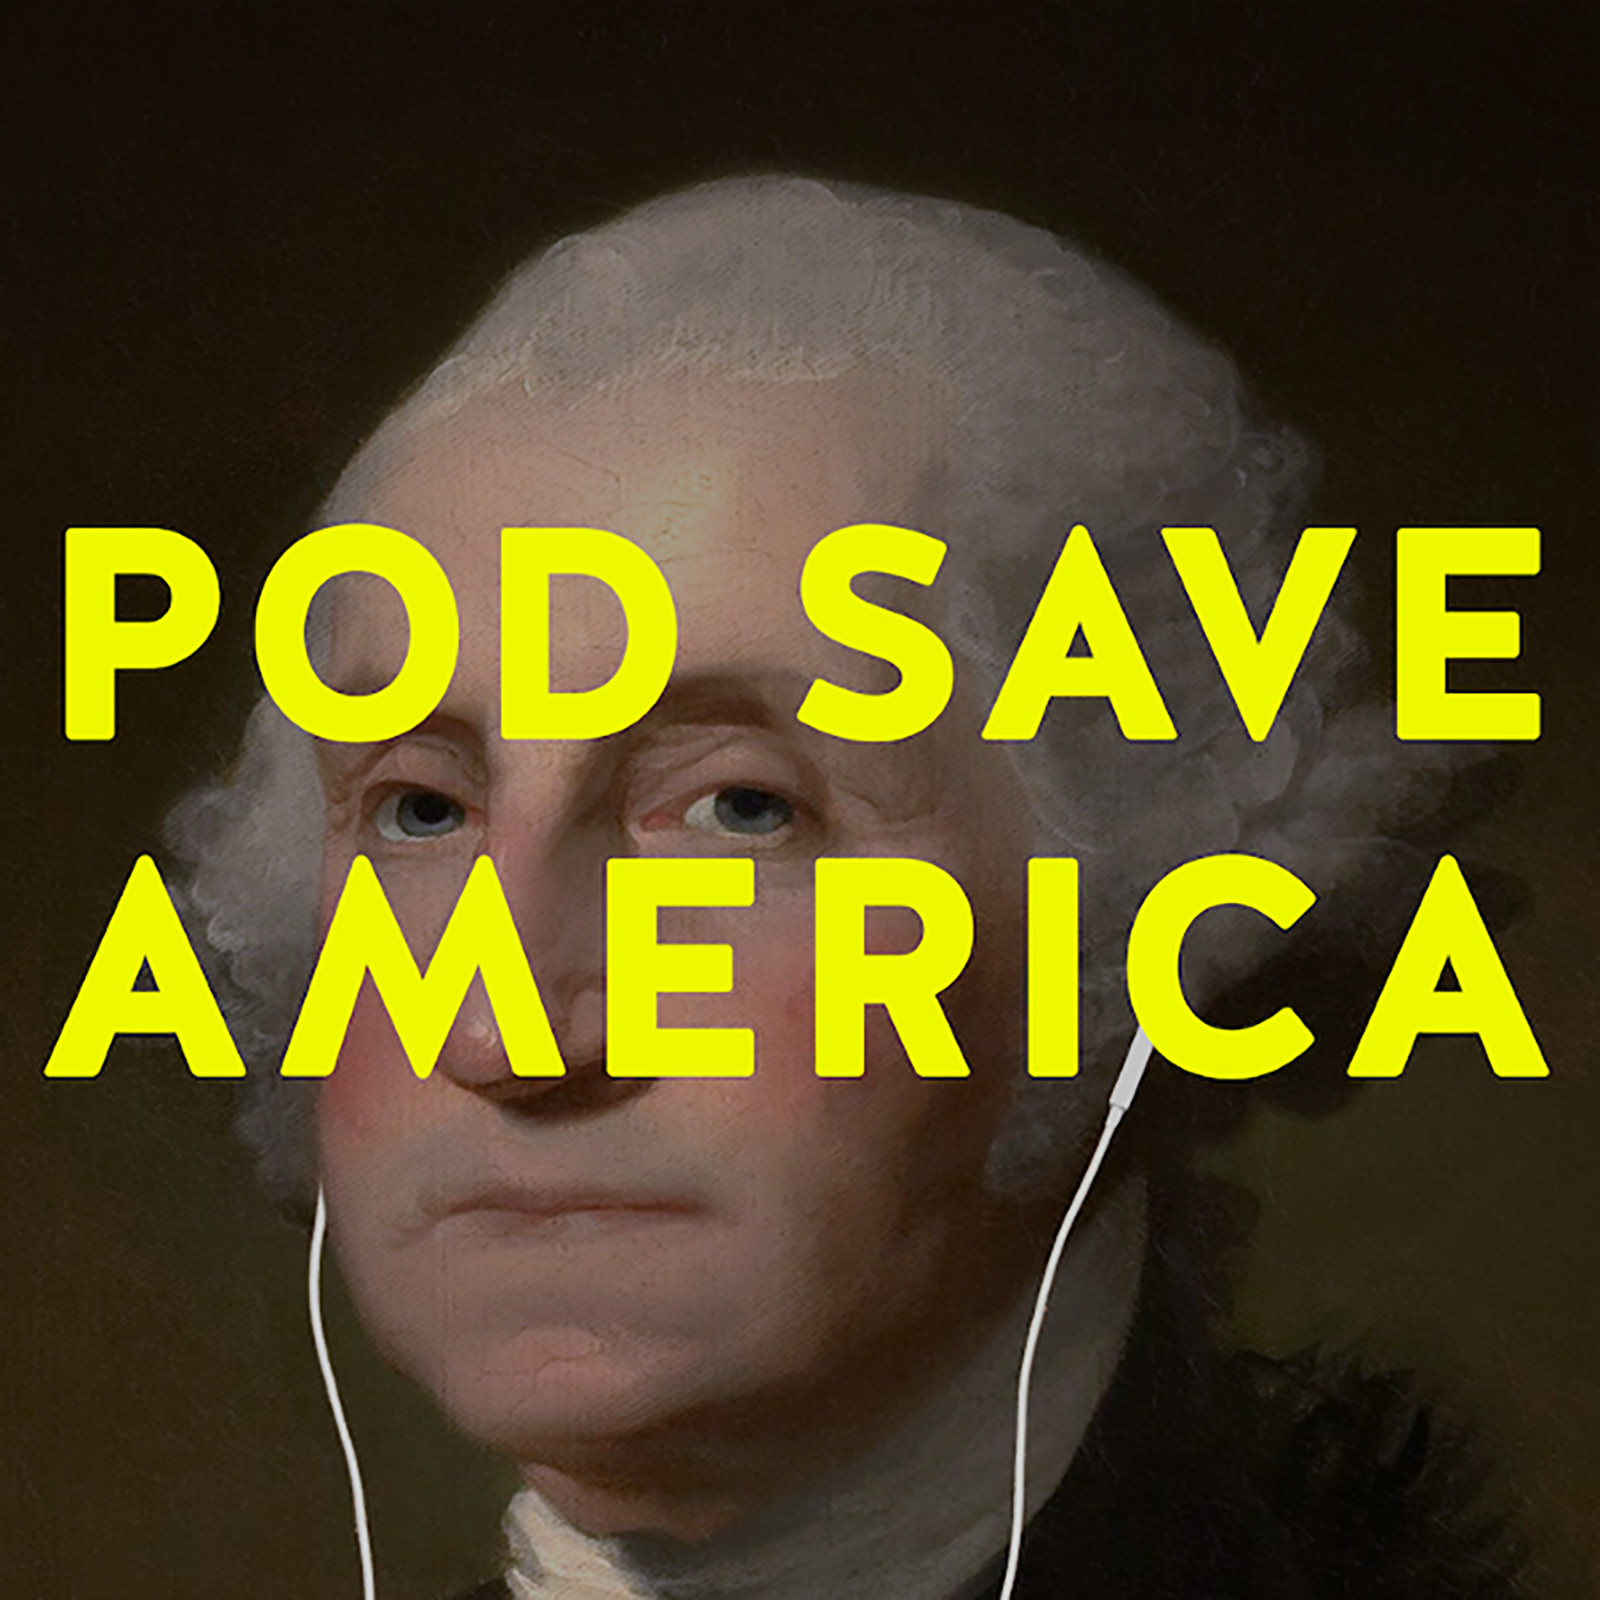 Pod Save America Cover art by Jesse McLean